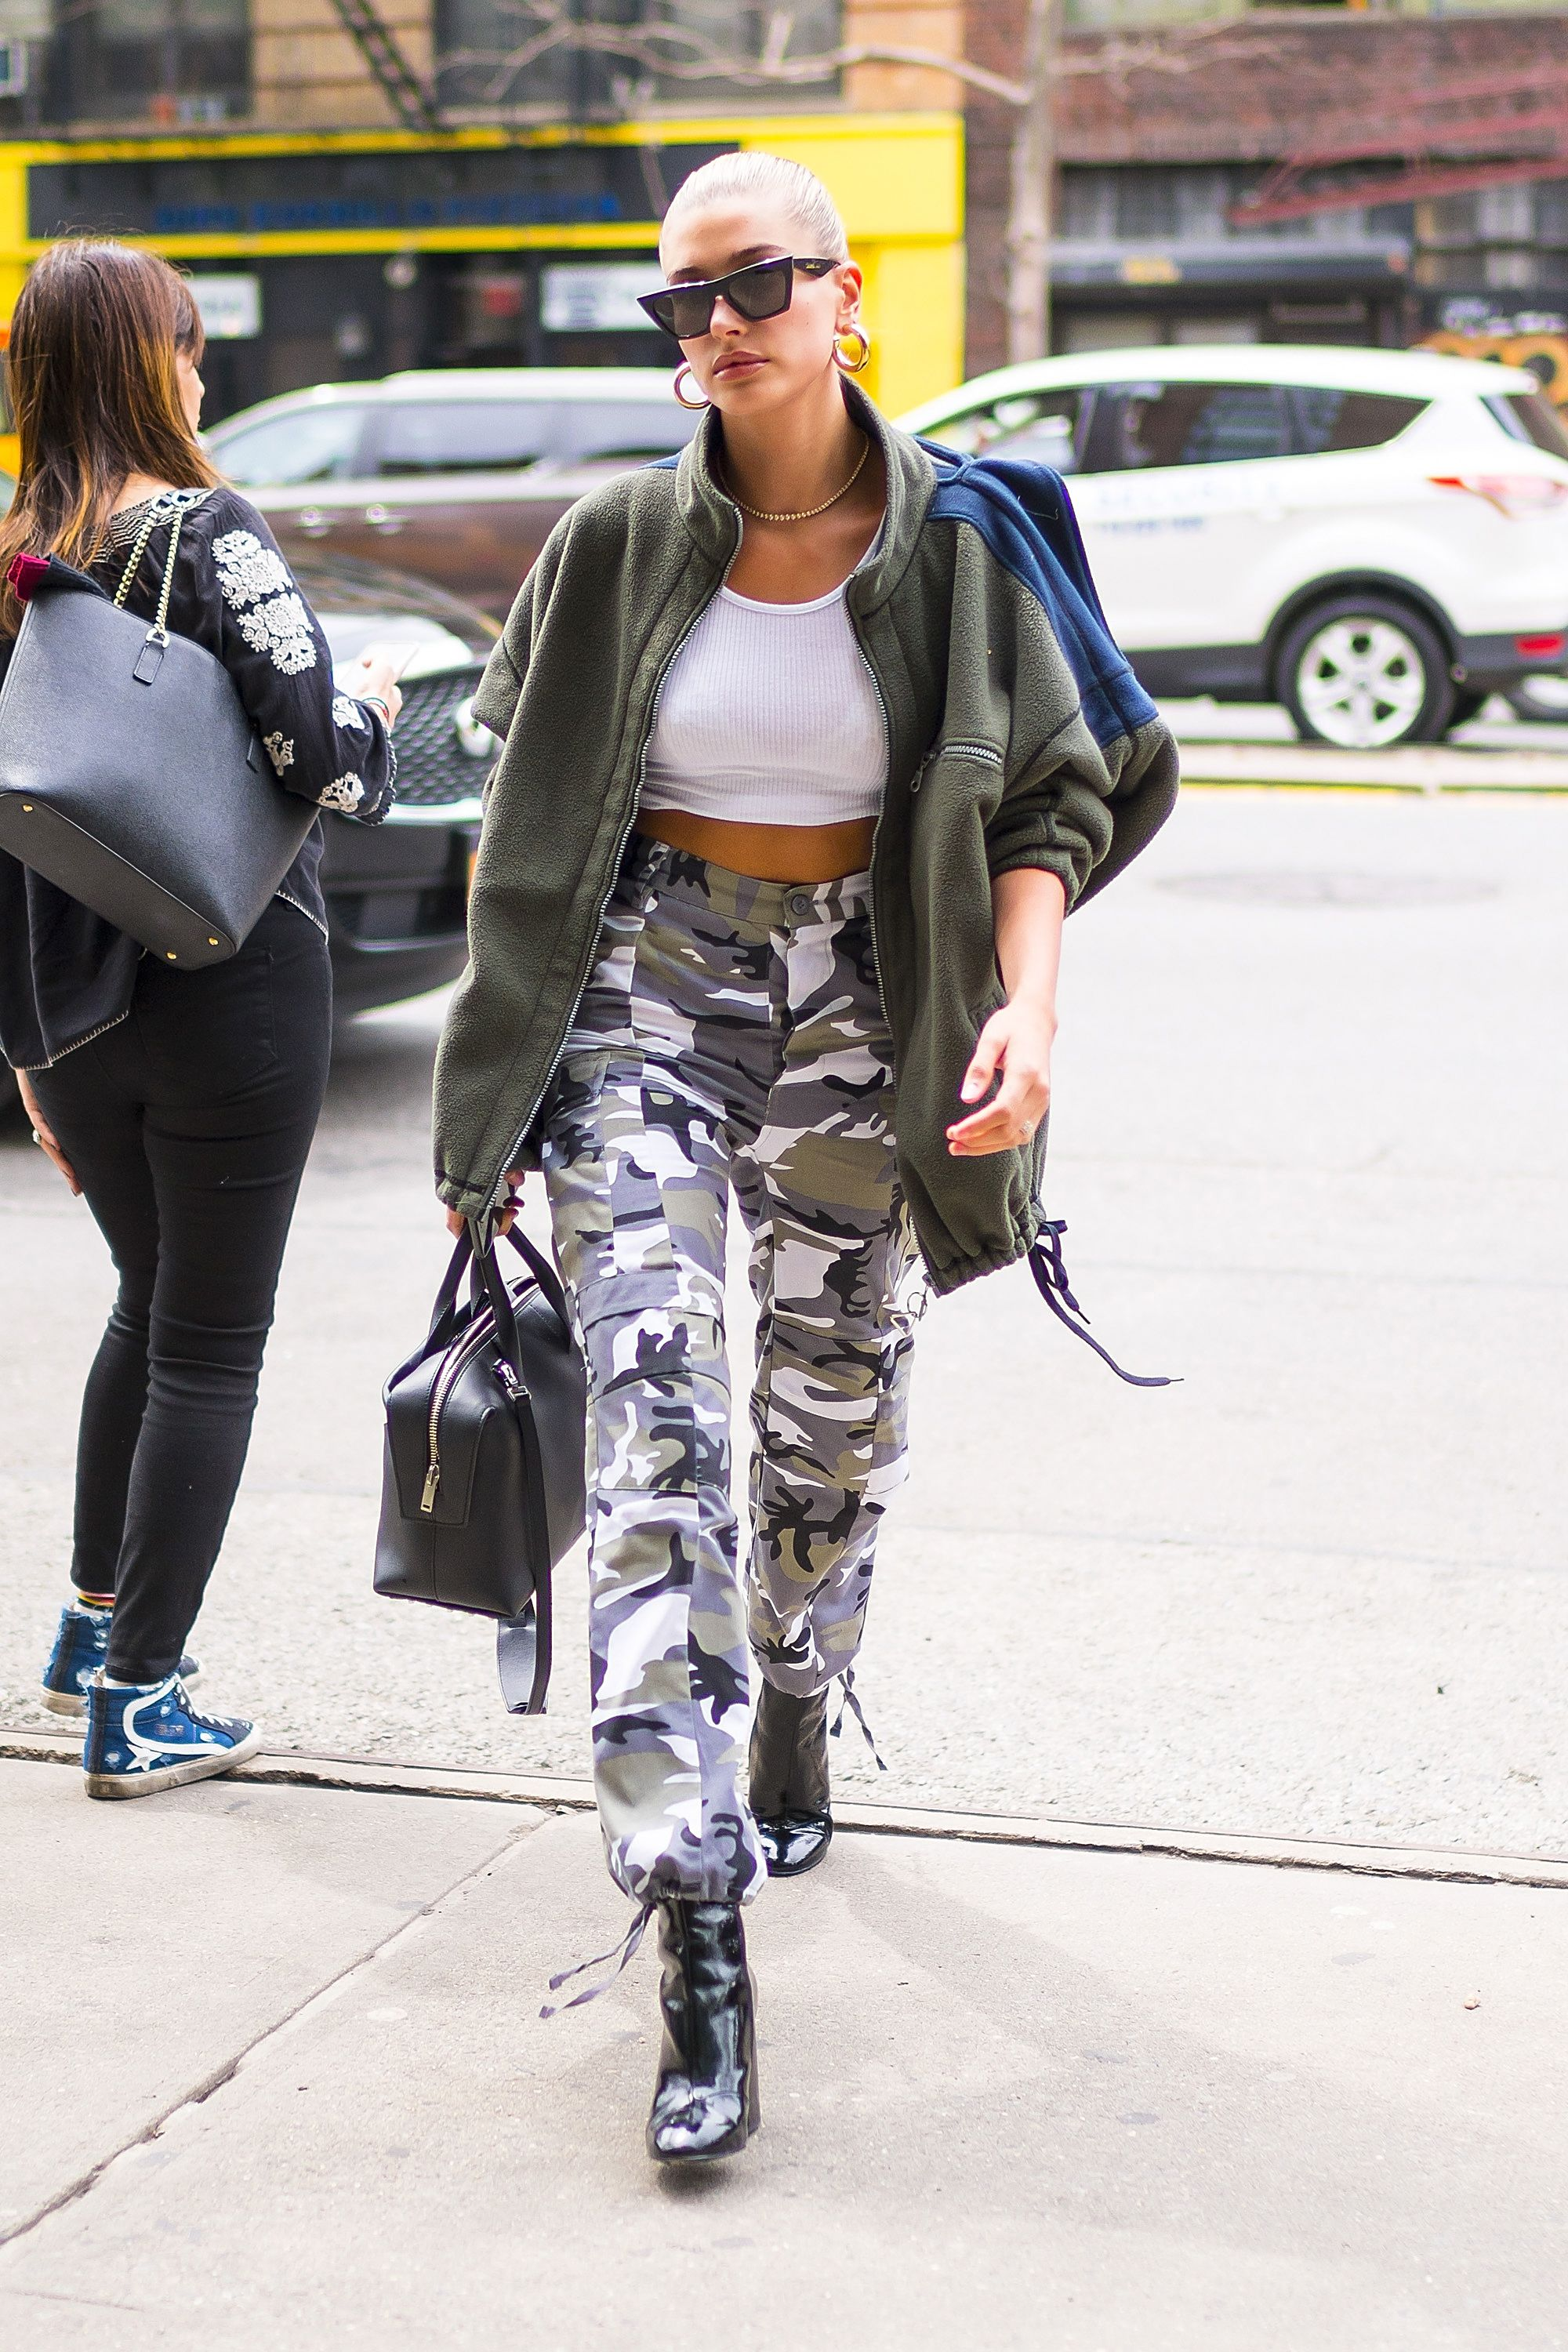 Hailey Baldwin When the weather's nice and you want to show off your midriff, a crop top is the best option. To avoid baring it all though, opt for high-waisted pants like a cool pair of camo bottoms and an oversized fleece jacket JIC it's still chilly.